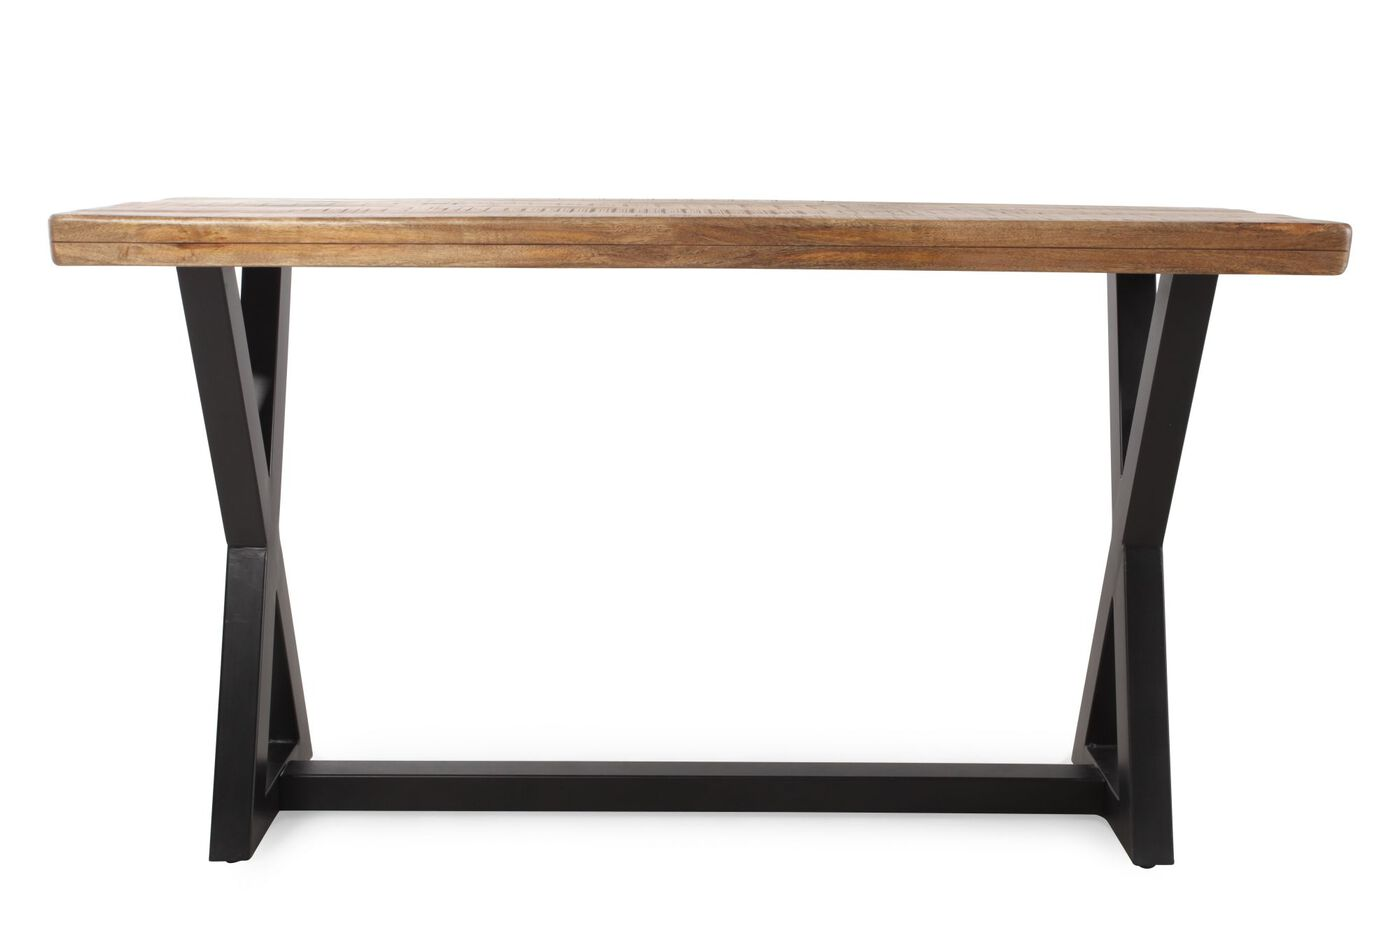 Ashley Wesling Console Table Mathis Brothers Furniture : ASH T8730474 from www.mathisbrothers.com size 1400 x 933 jpeg 45kB